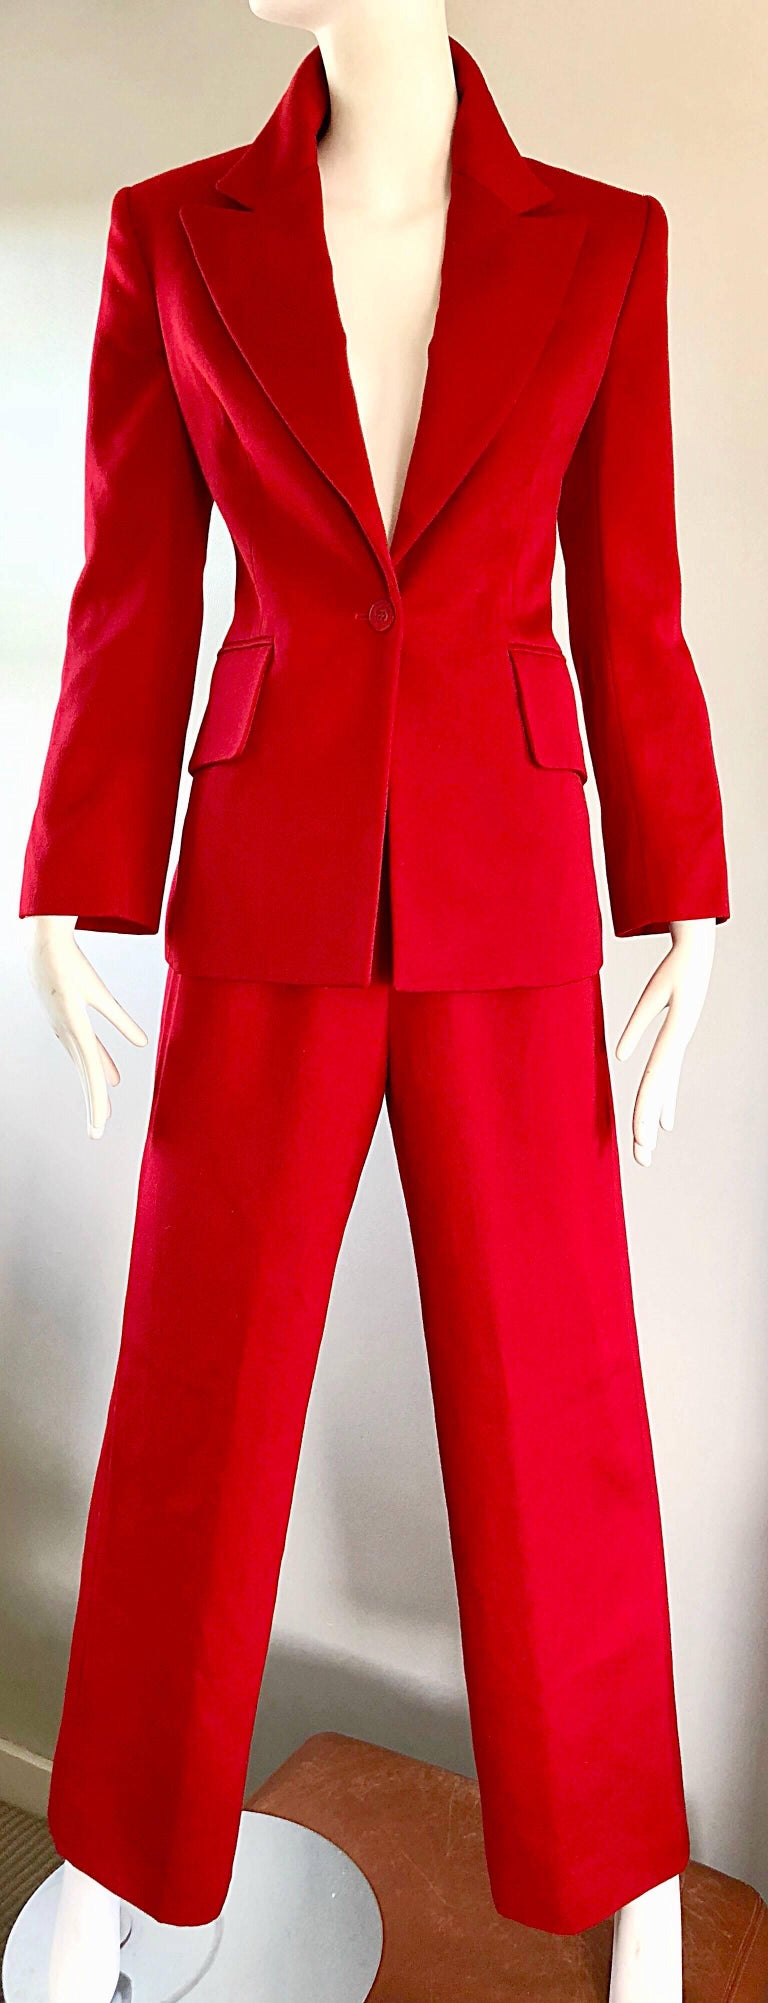 Isaac Mizrahi Vintage 1990s Lipstick Red Wide Leg Wool Le Smoking 90s Pants Suit 6